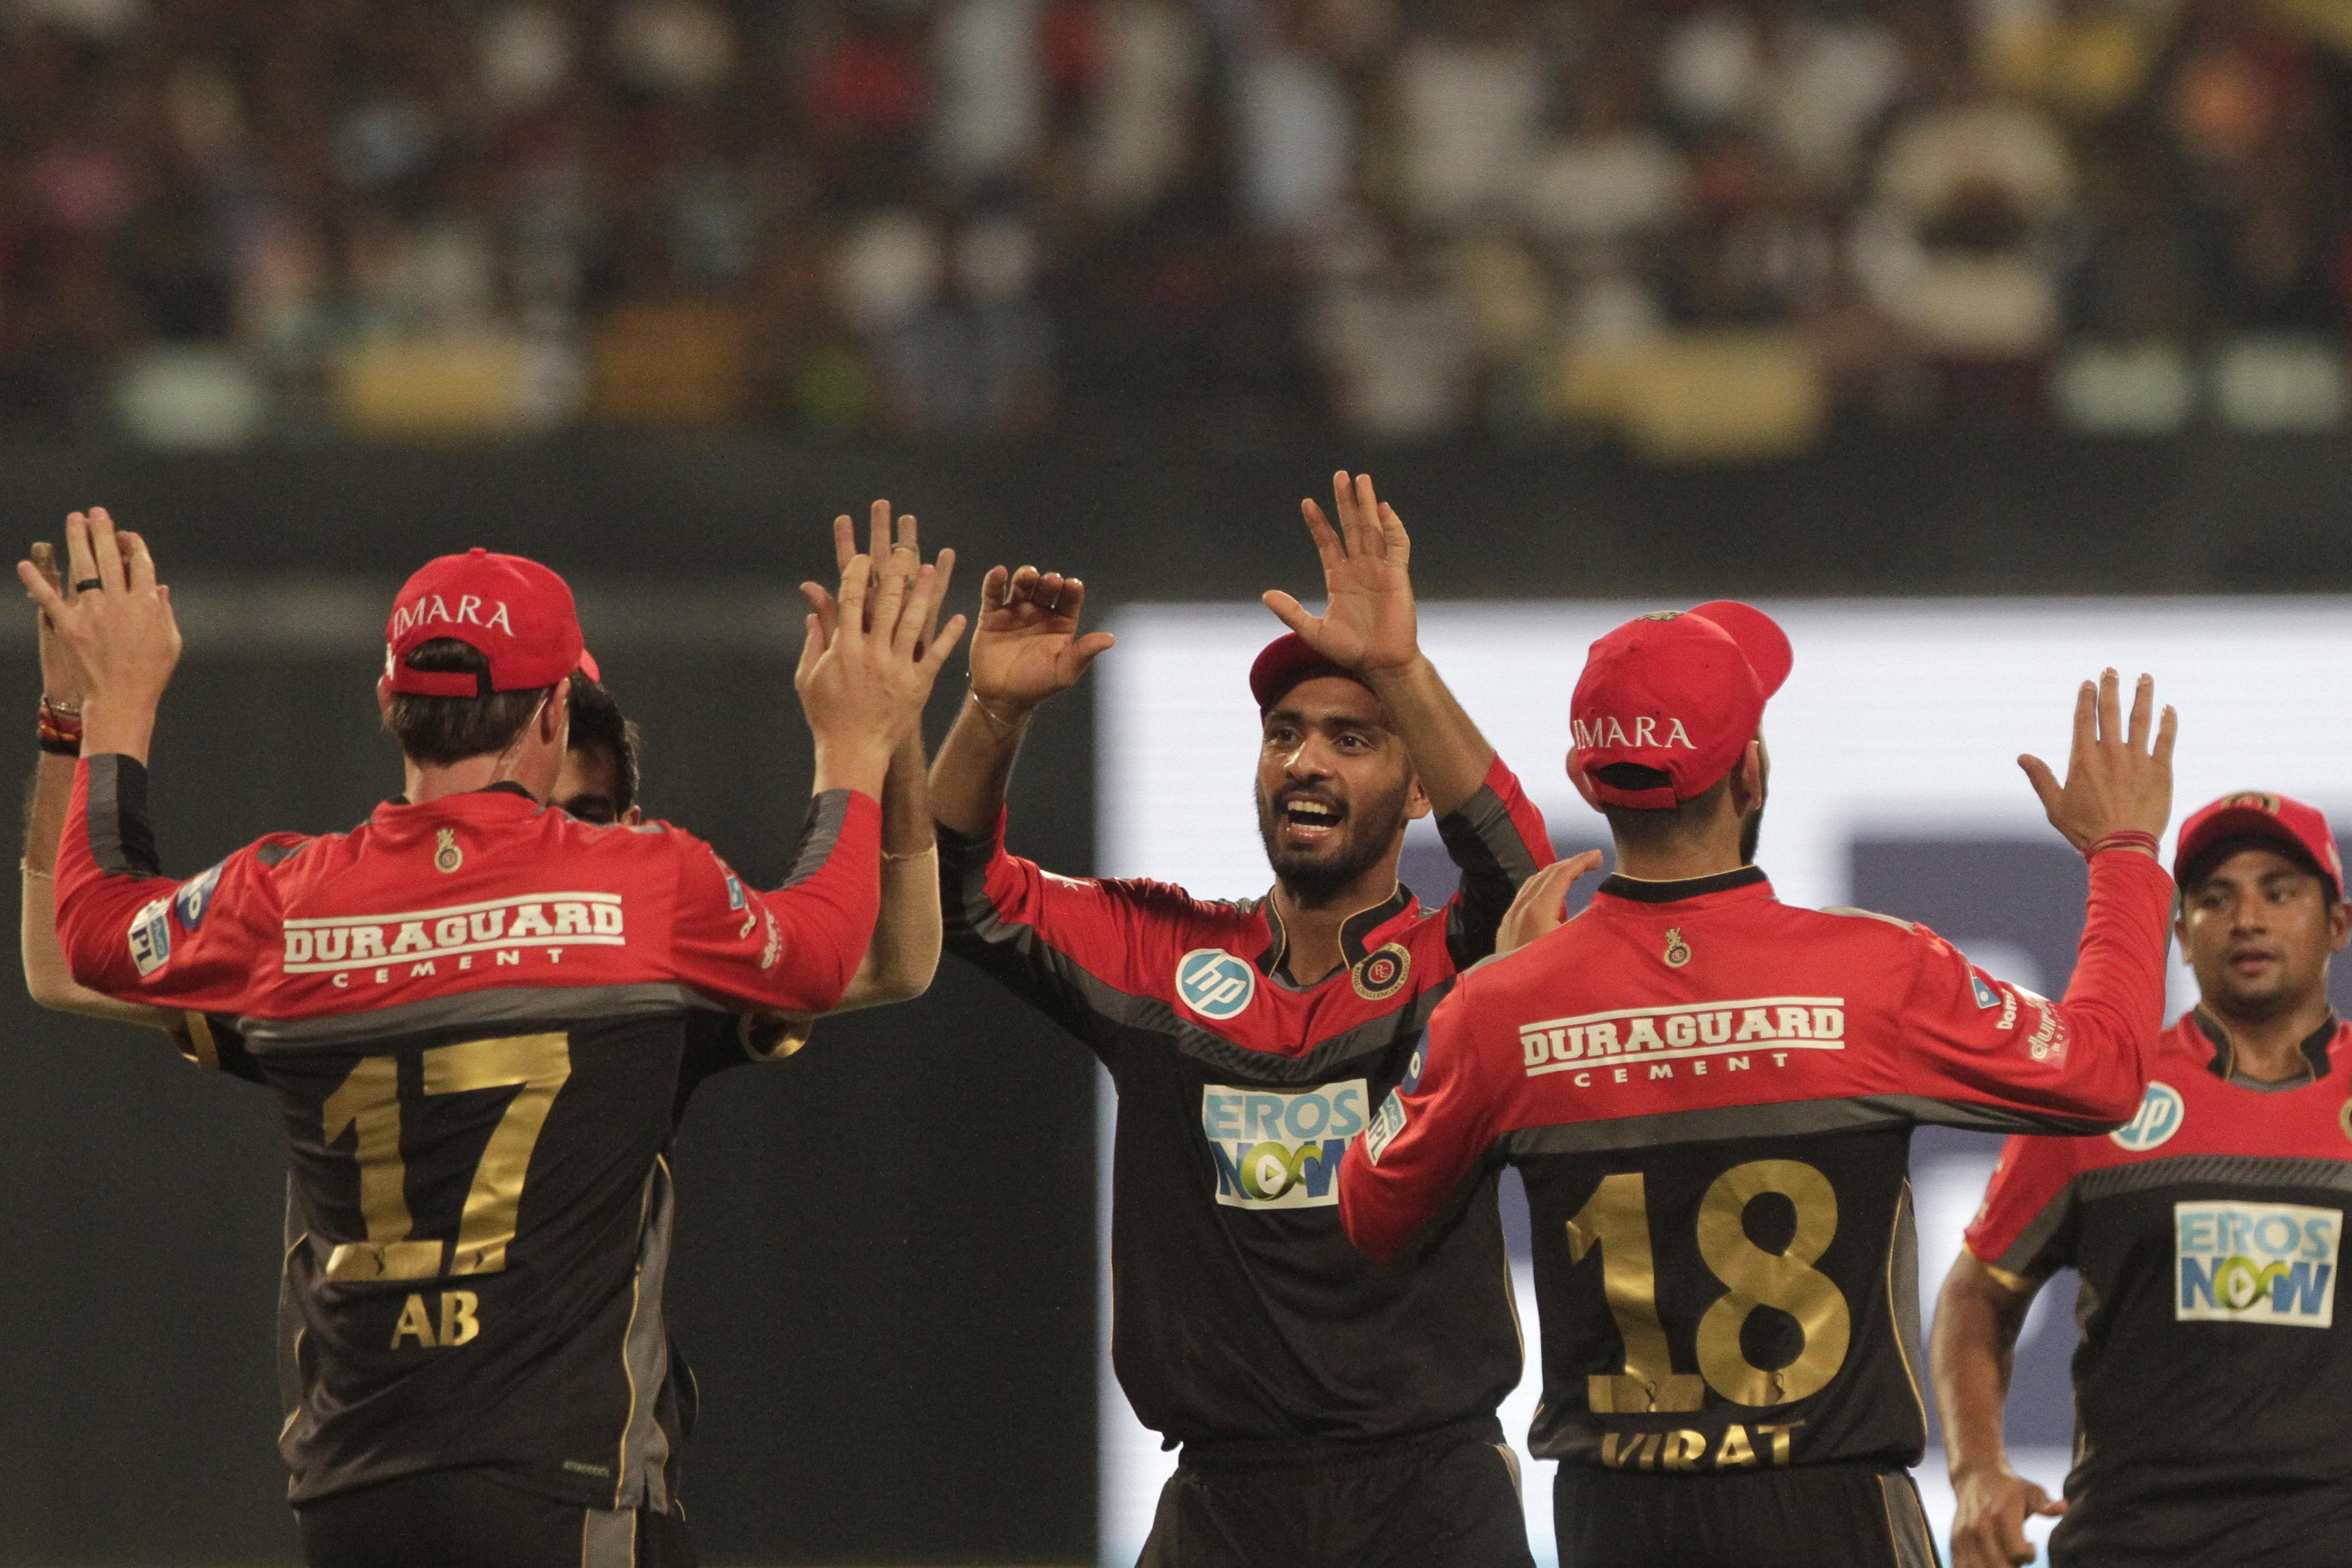 Royal Challengers Bangalore celebrated a home win against Kings XI Punjab on Friday